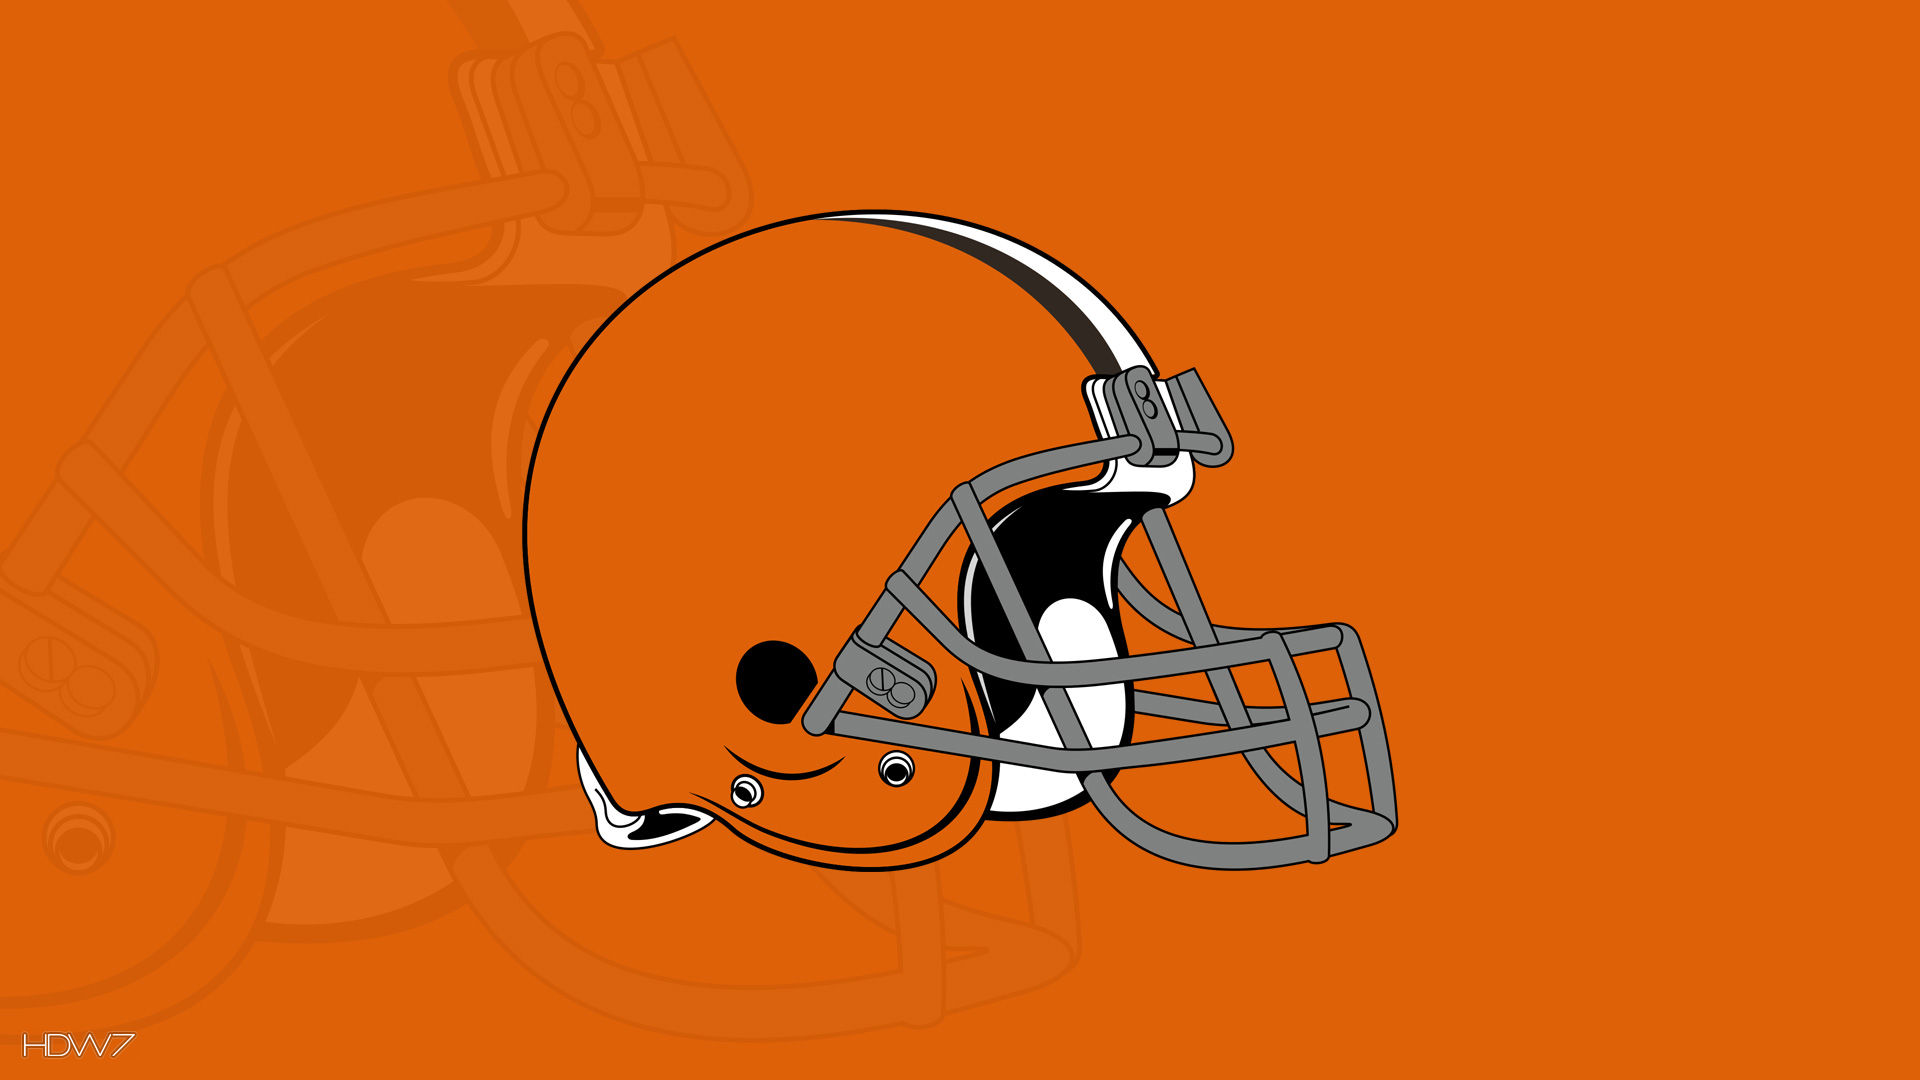 Hd Wallpapers Cleveland Browns 1365 X 1024 239 Kb Jpeg HD Wallpapers 1920x1080